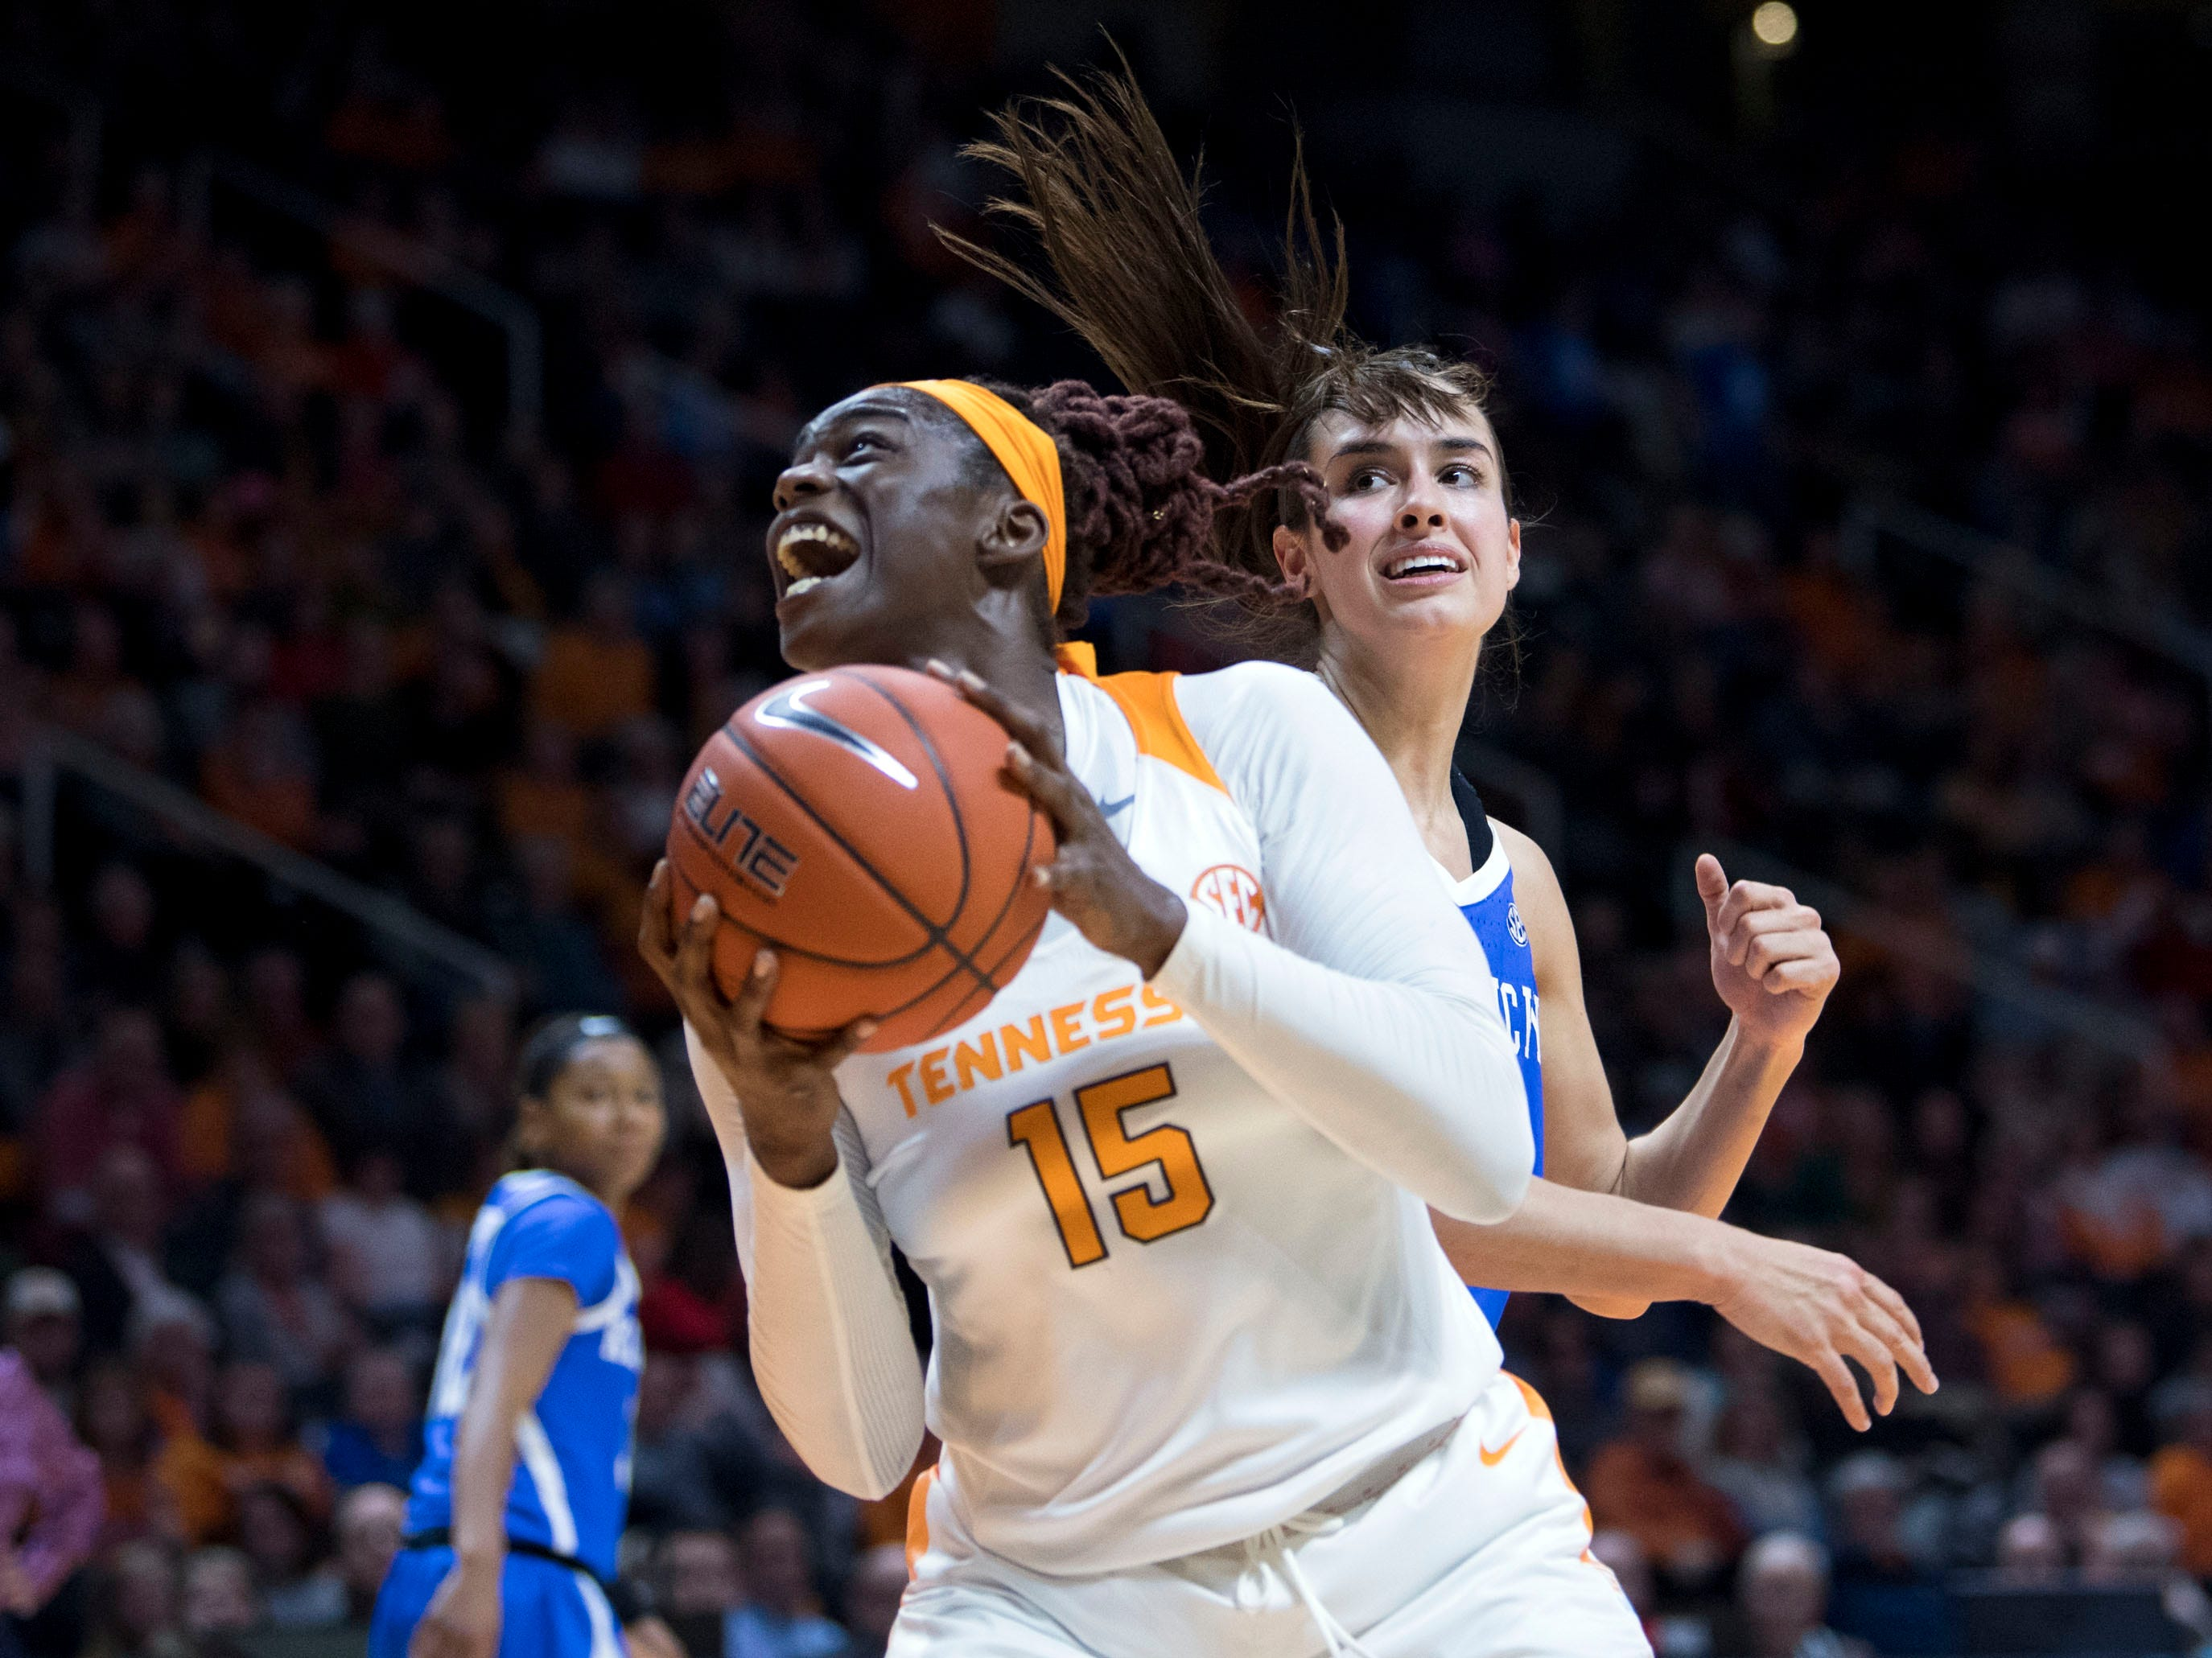 Tennessee's Cheridene Green (15) looks to score while guarded by Kentucky's Maci Morris (4) on Thursday, January 10, 2019.